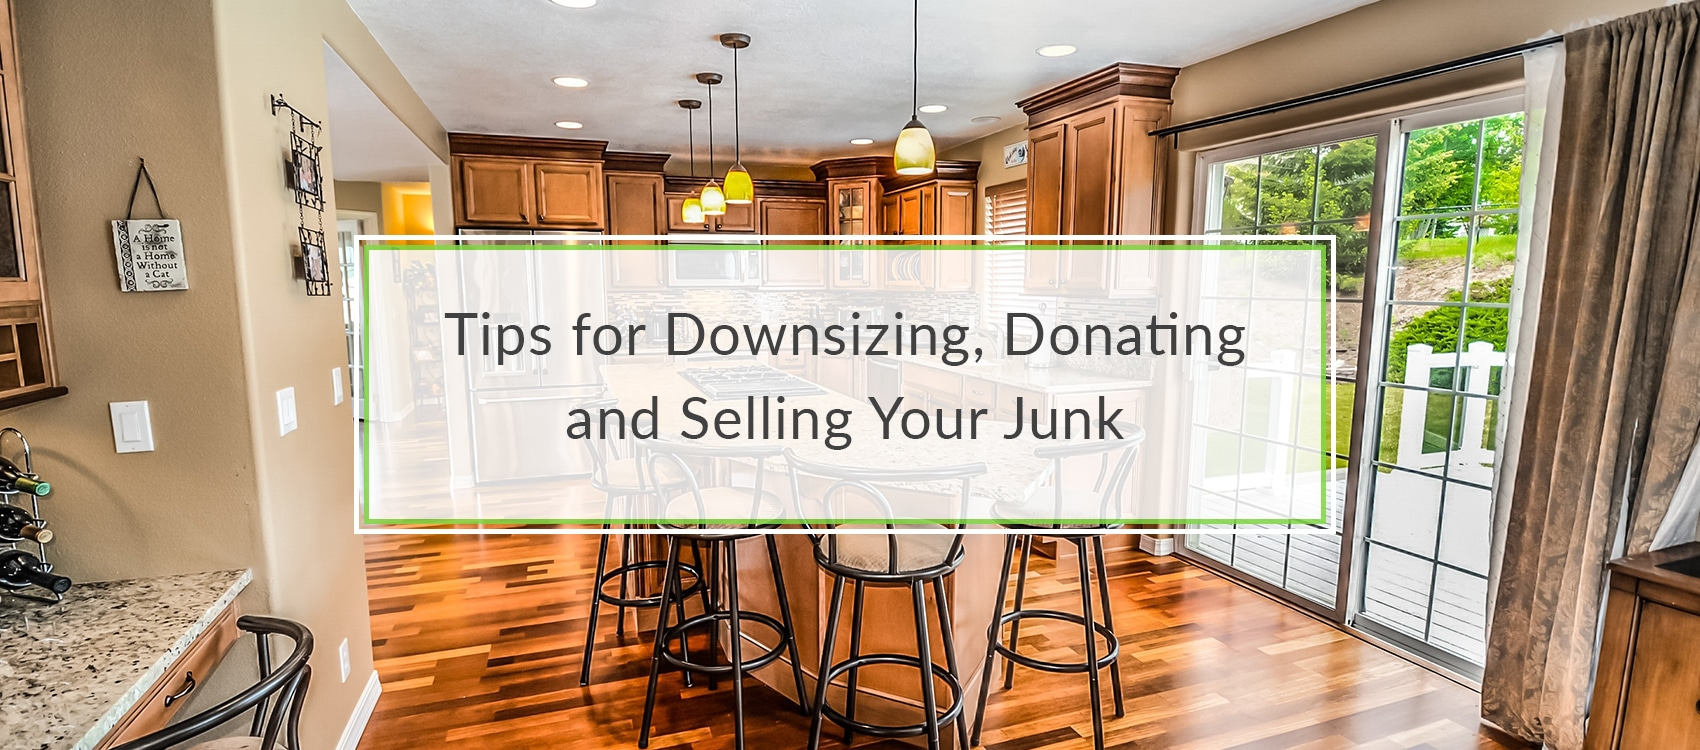 tips for downsizing